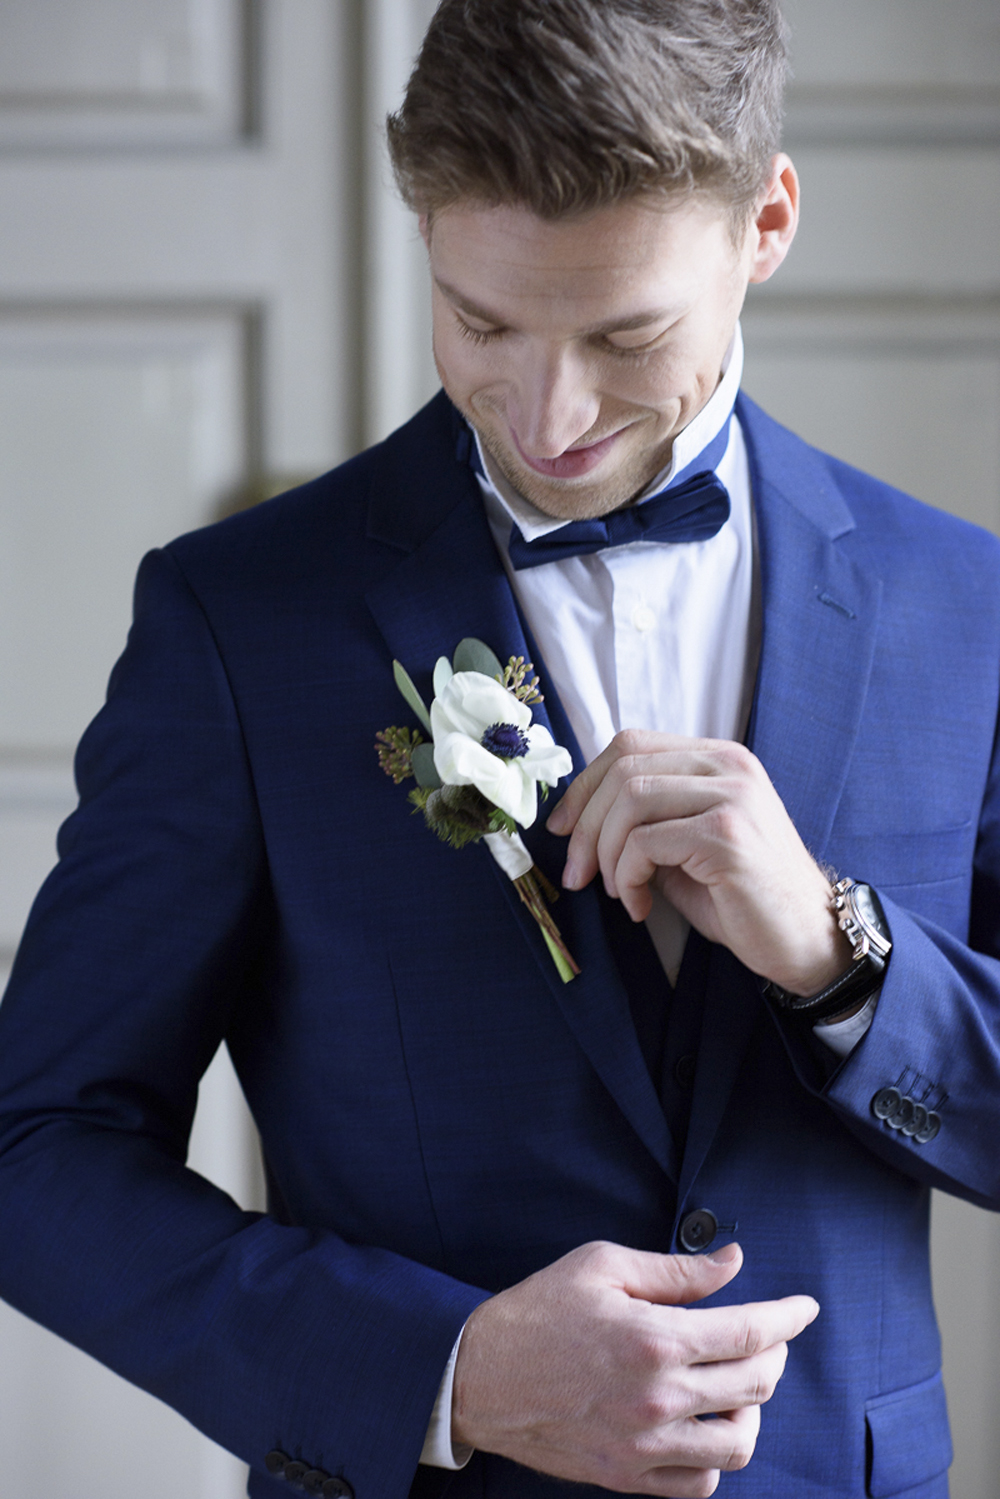 Groom getting ready blue accessories on wedding day by wedding photographer Barbara Wenz Vienna Austria